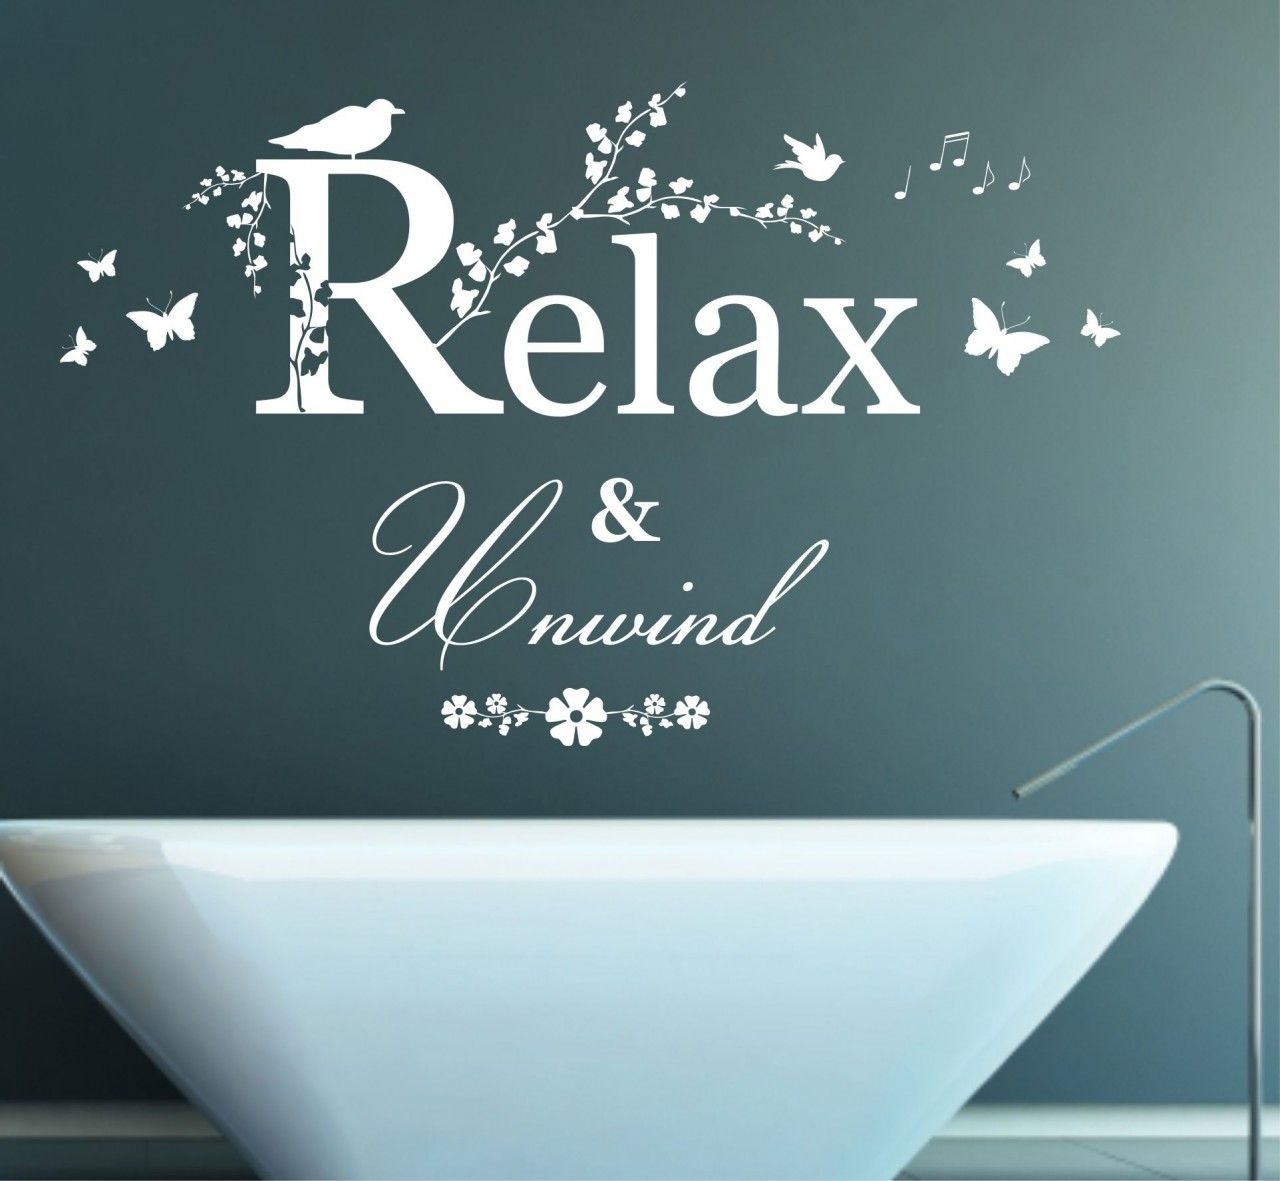 Relax Wall Decor Relax Pictres And Quotes Unwind Quote Vinyl Wall On Relax Refresh Renew Vinyl Decal Spa Master By Mulberrycreek